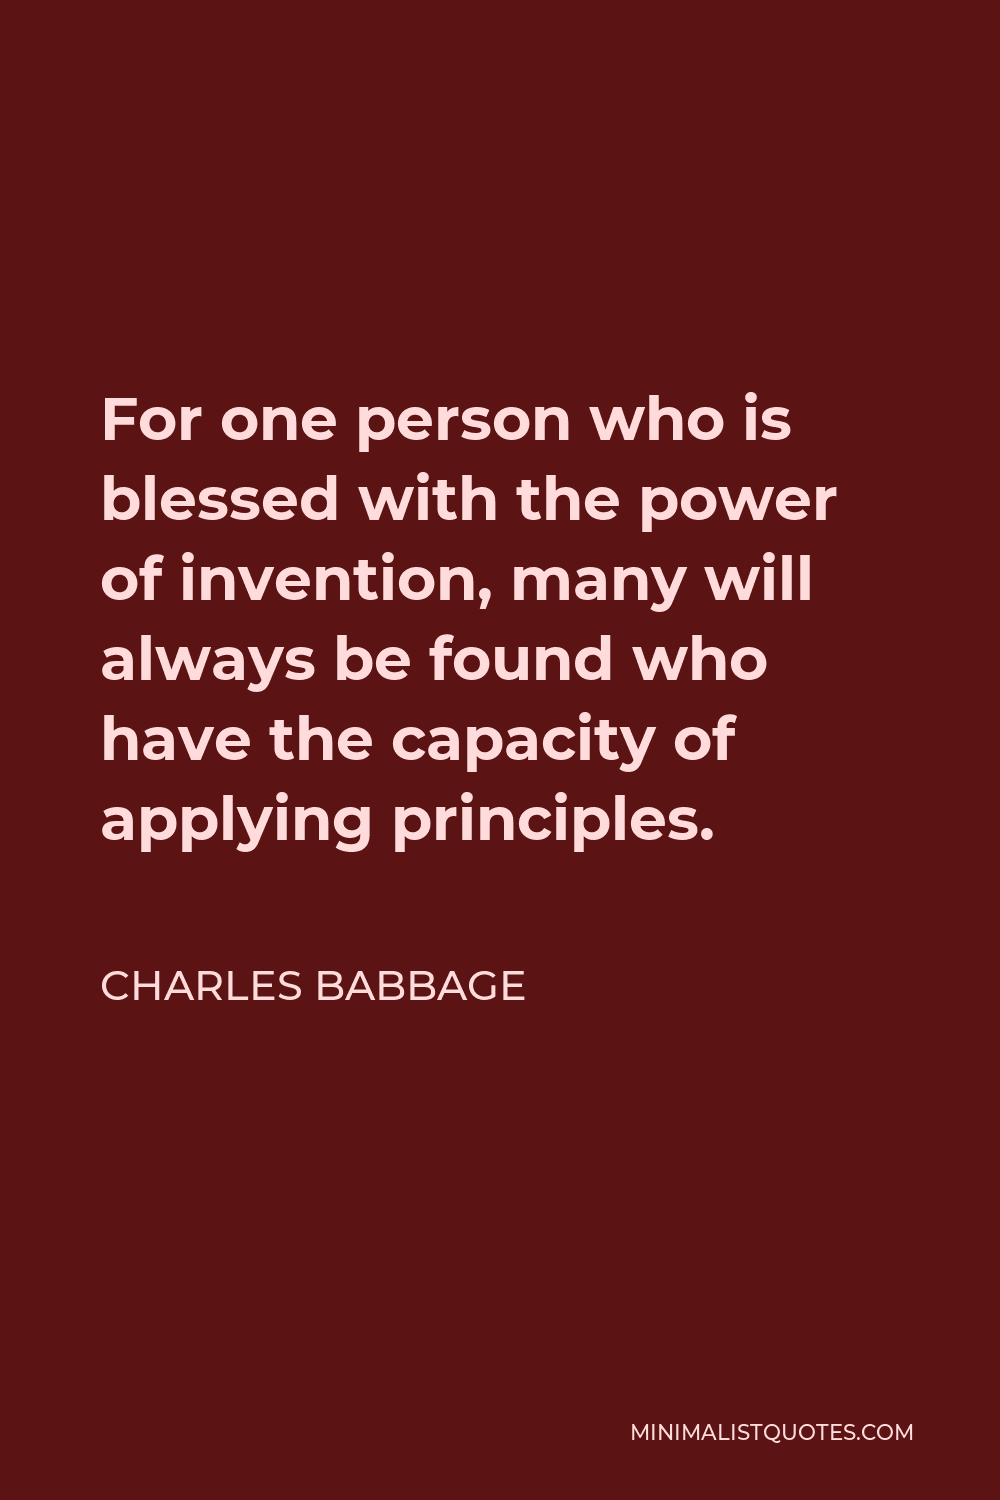 Charles Babbage Quote - For one person who is blessed with the power of invention, many will always be found who have the capacity of applying principles.